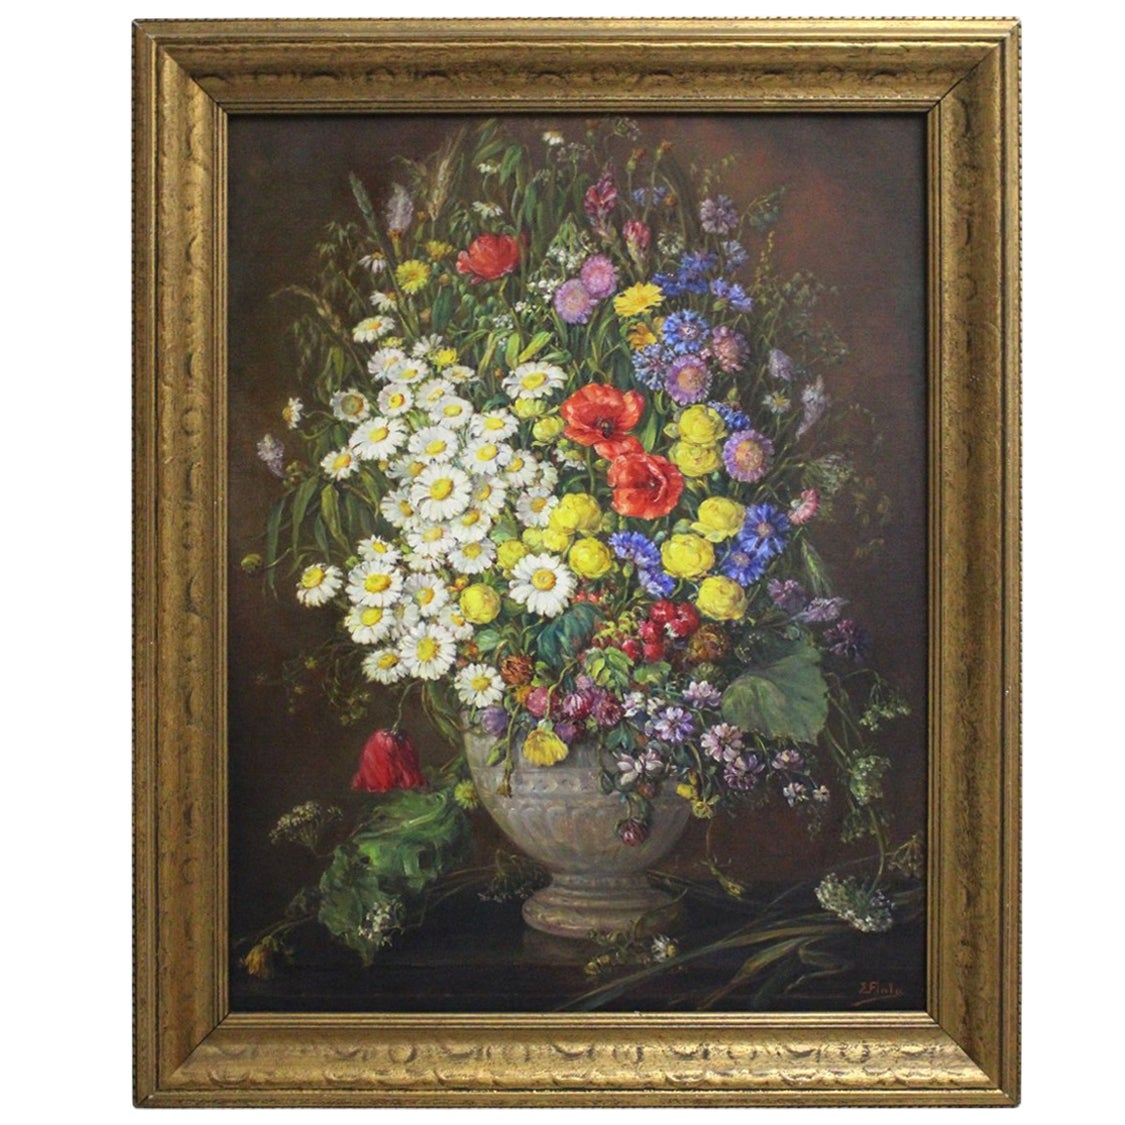 Art Deco Era Oil on Canvas Painting Wildflowers by Emil Fiala Vienna, 1930s